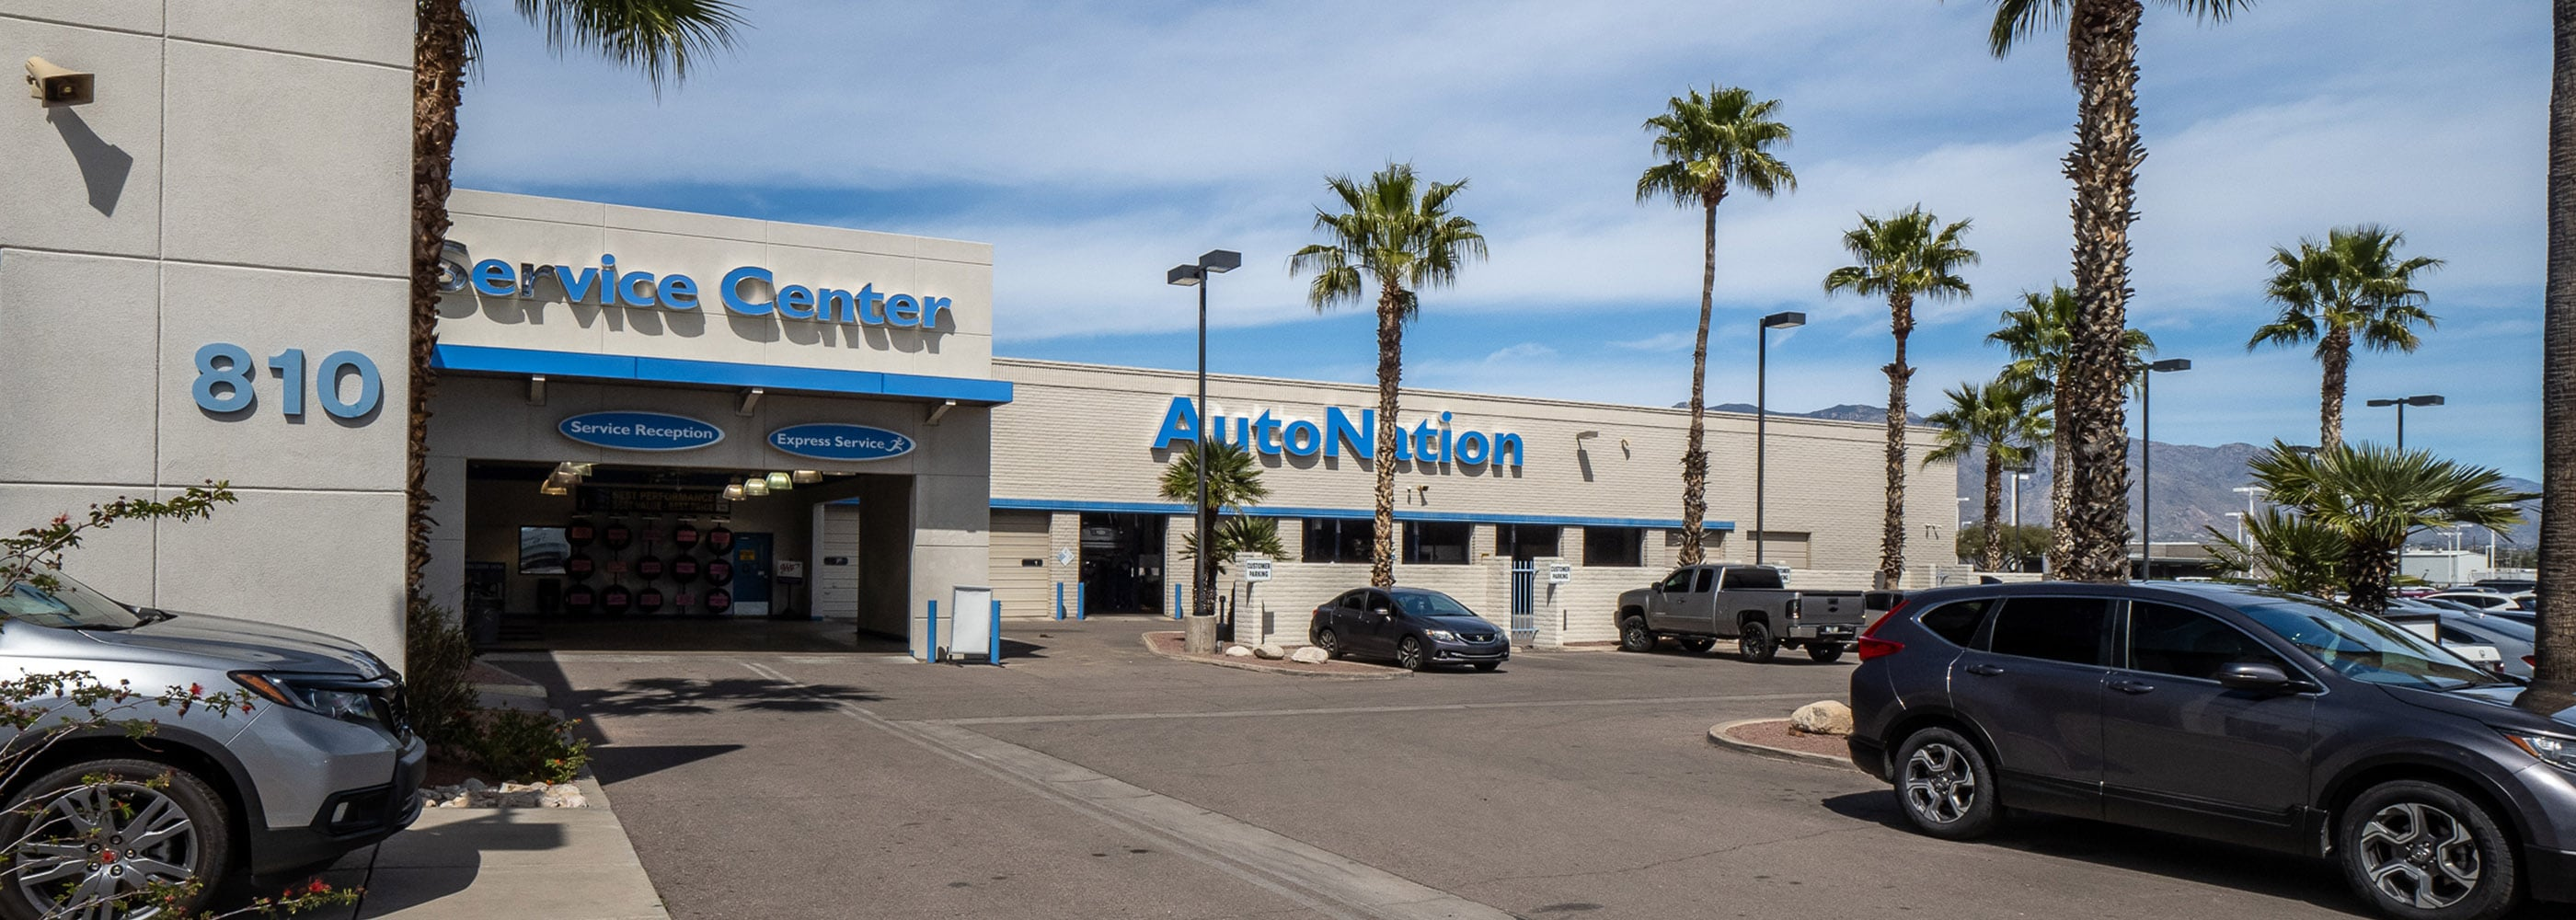 AutoNation Honda Tucson Auto Mall Service Center